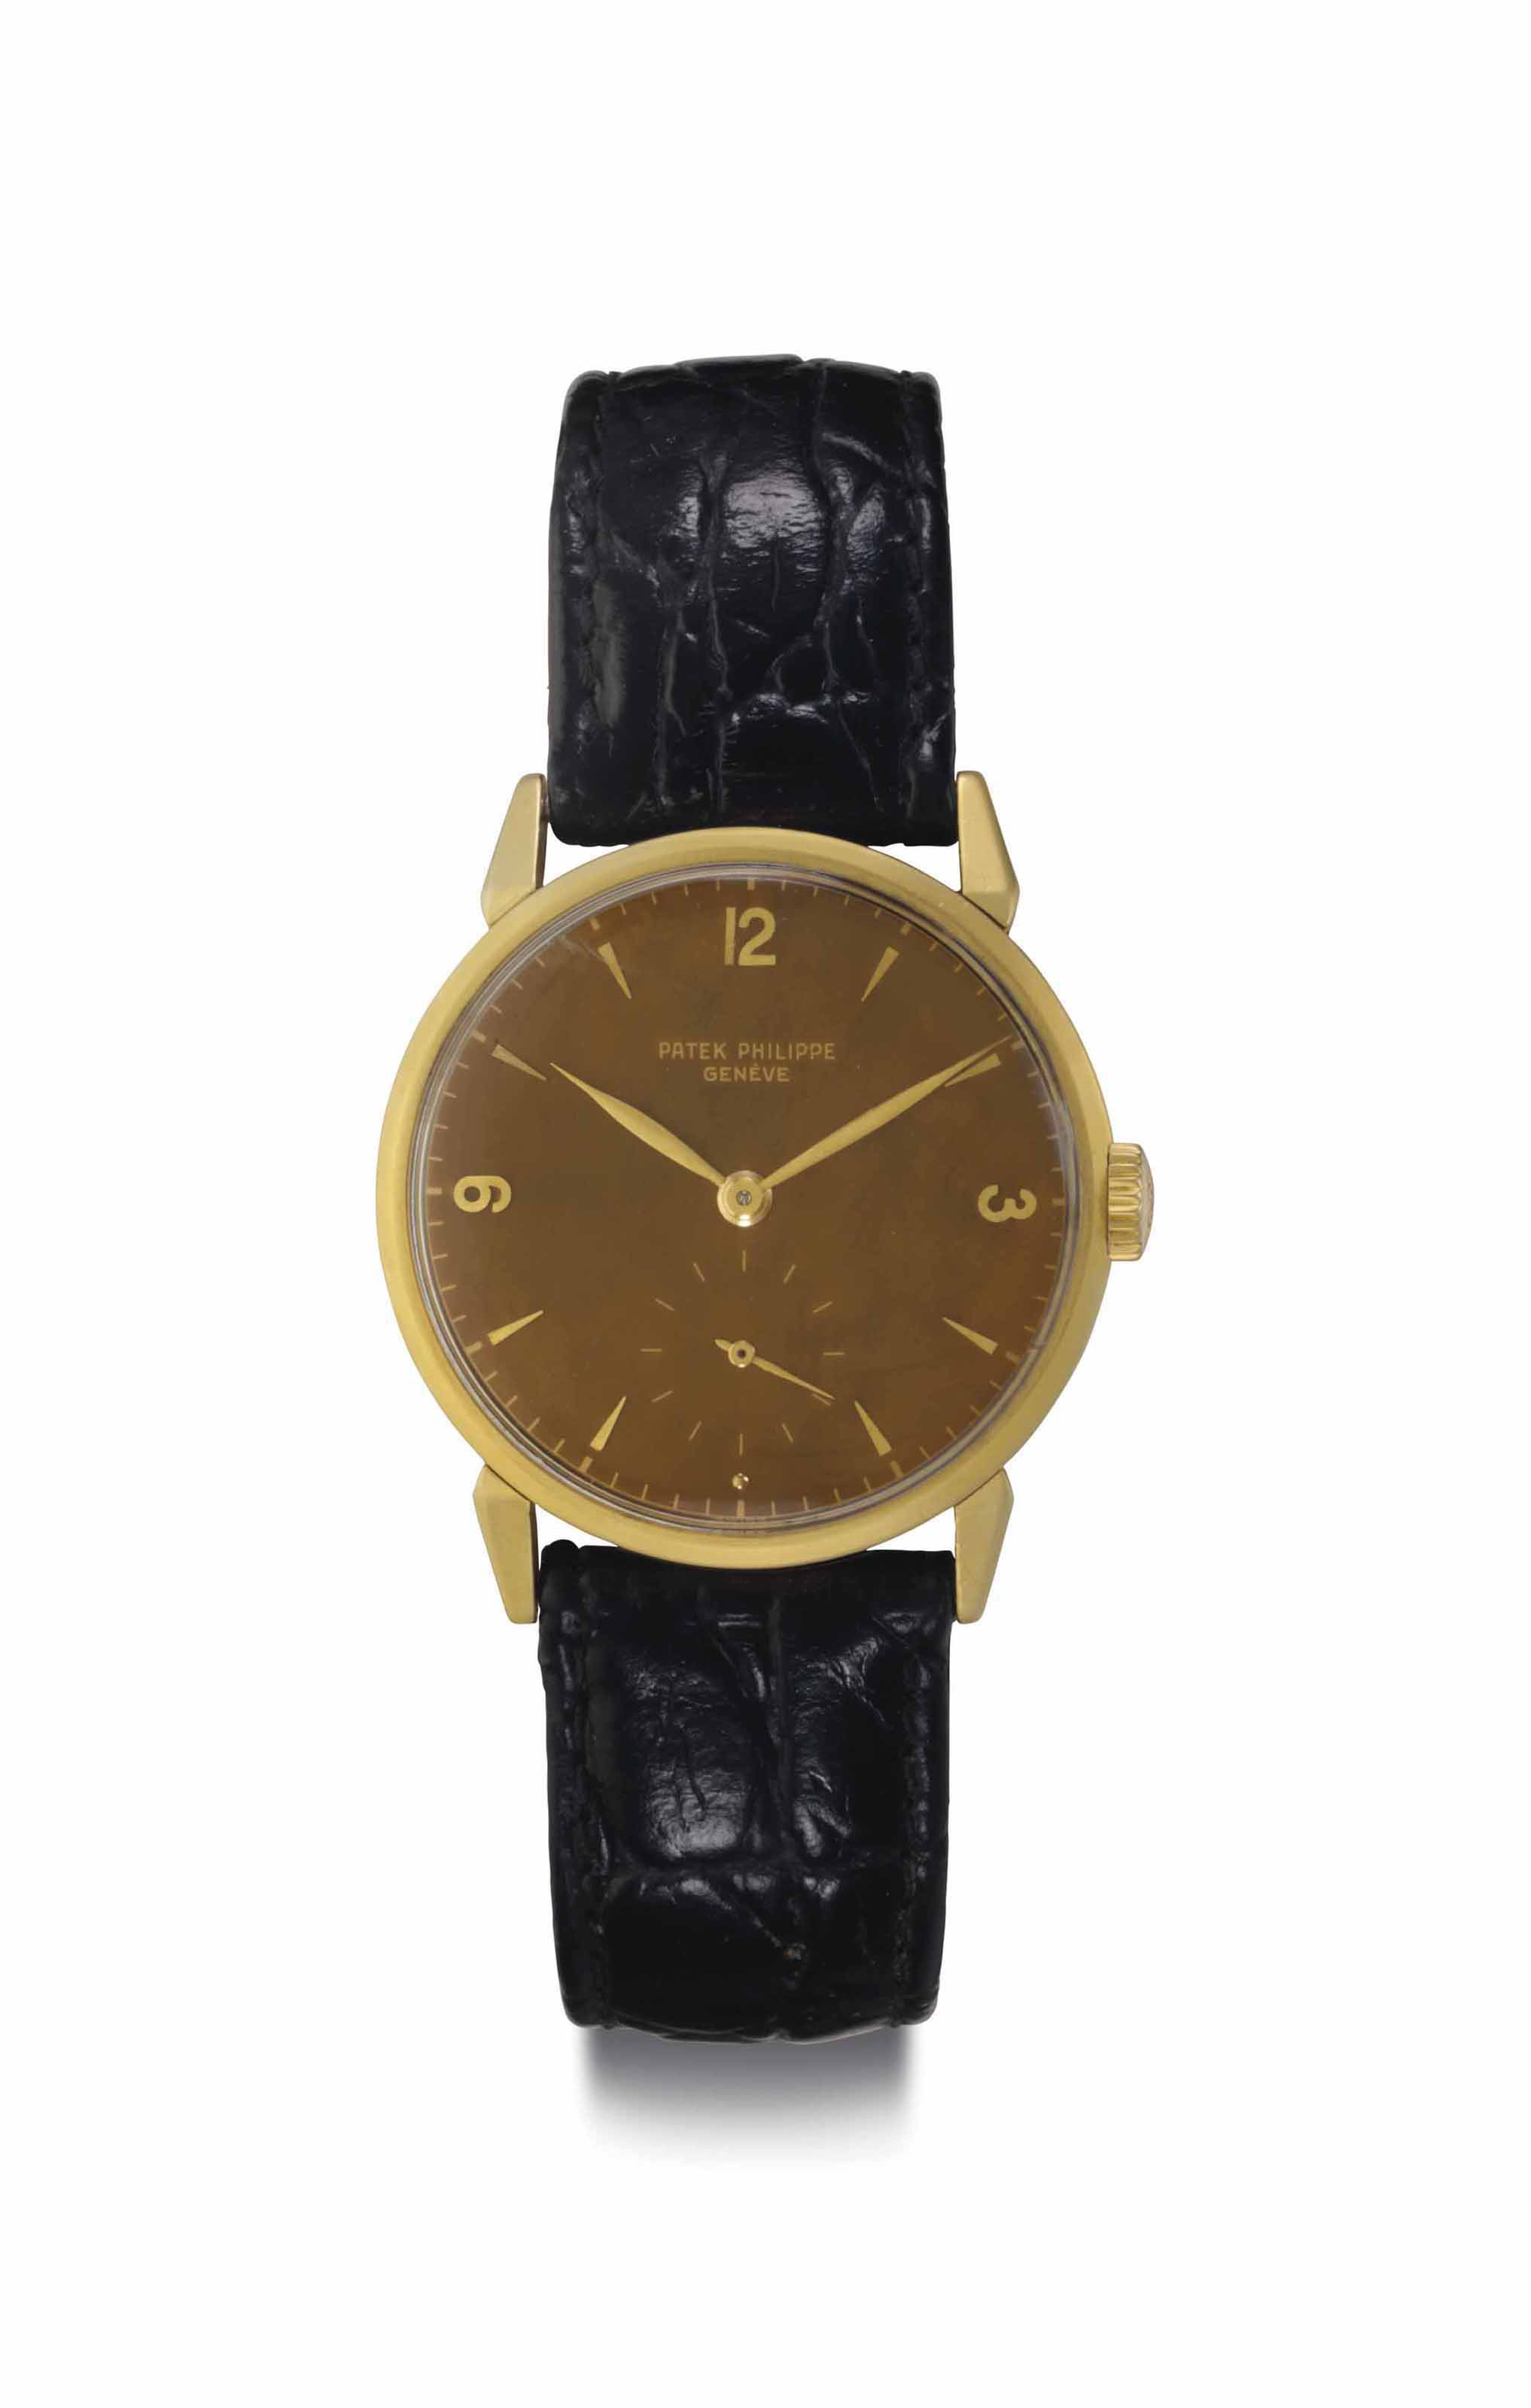 Patek Philippe. A Fine and Very Attractive 18k Gold Wristwatch With Unusual Dial, Belonging to a Long-Time Employee of General Motors